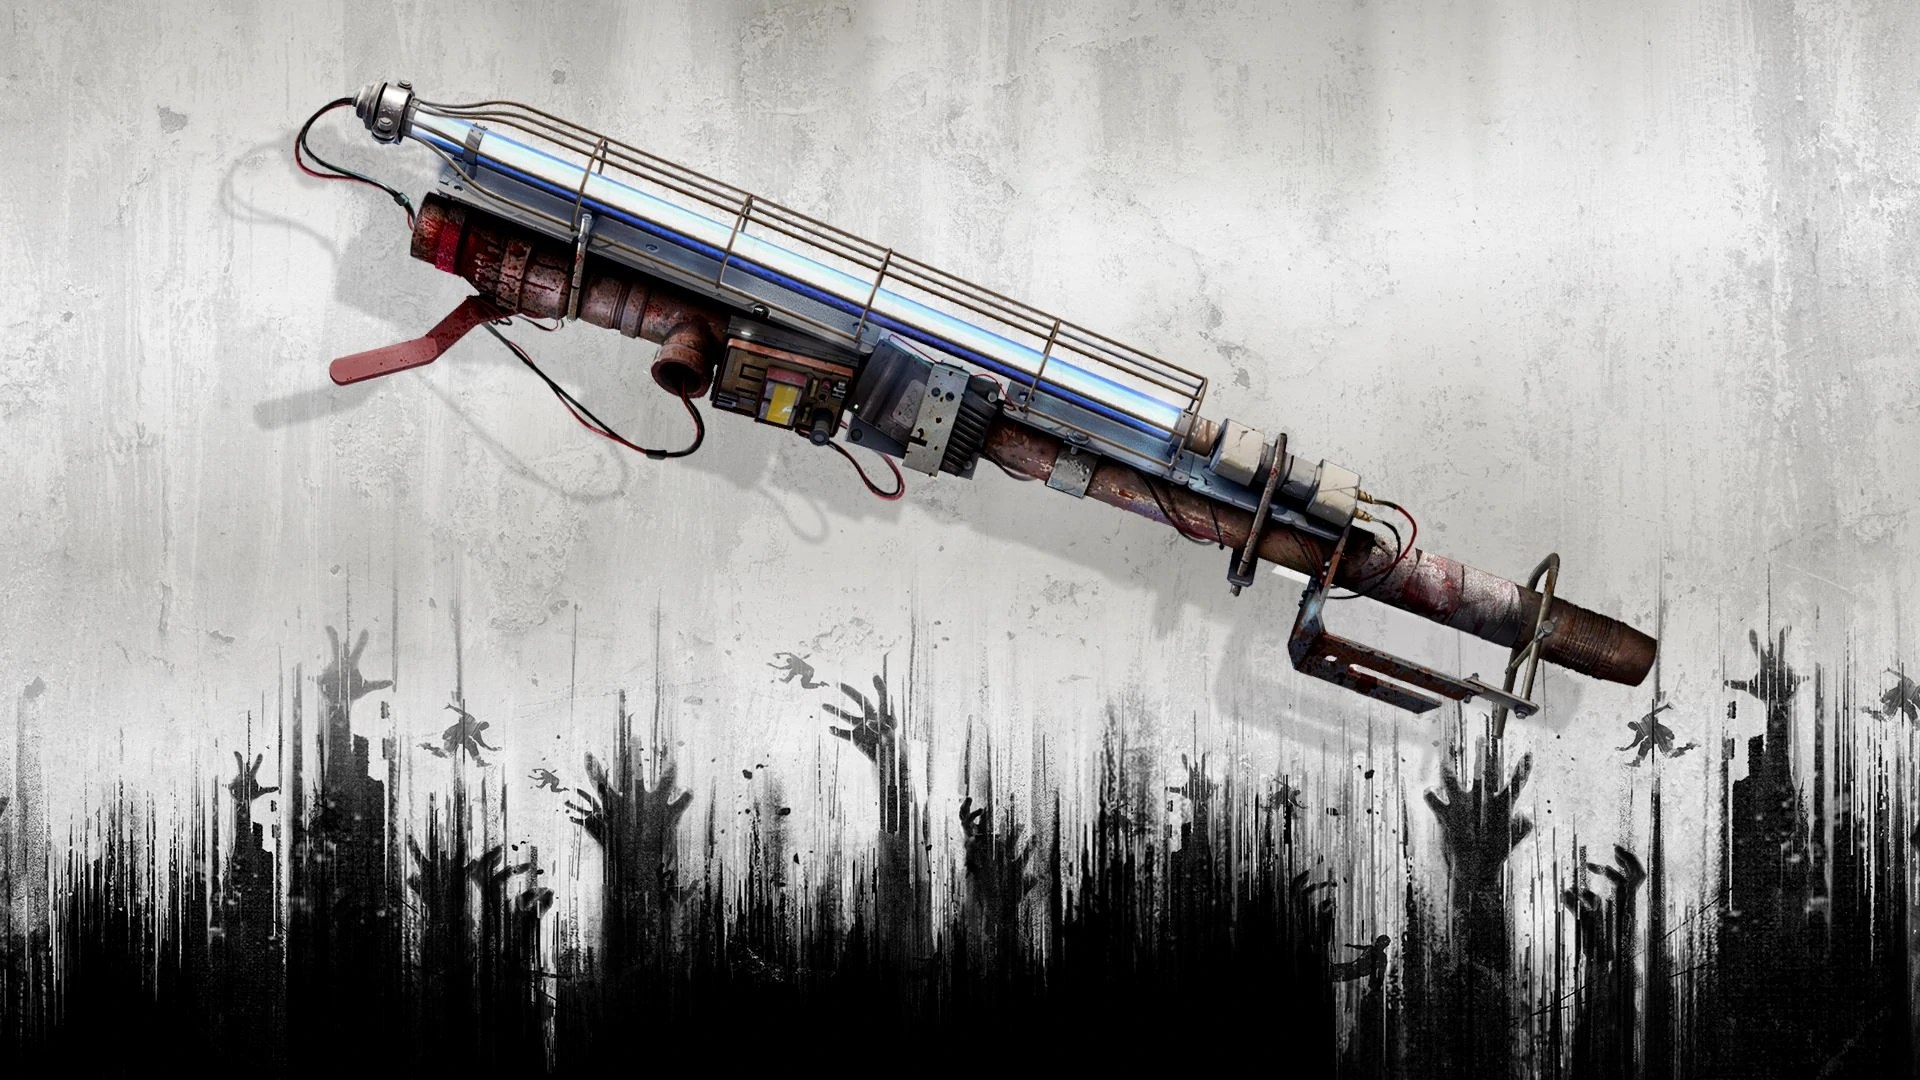 Dying Light Ultimate Weapon - Year of Clean Water